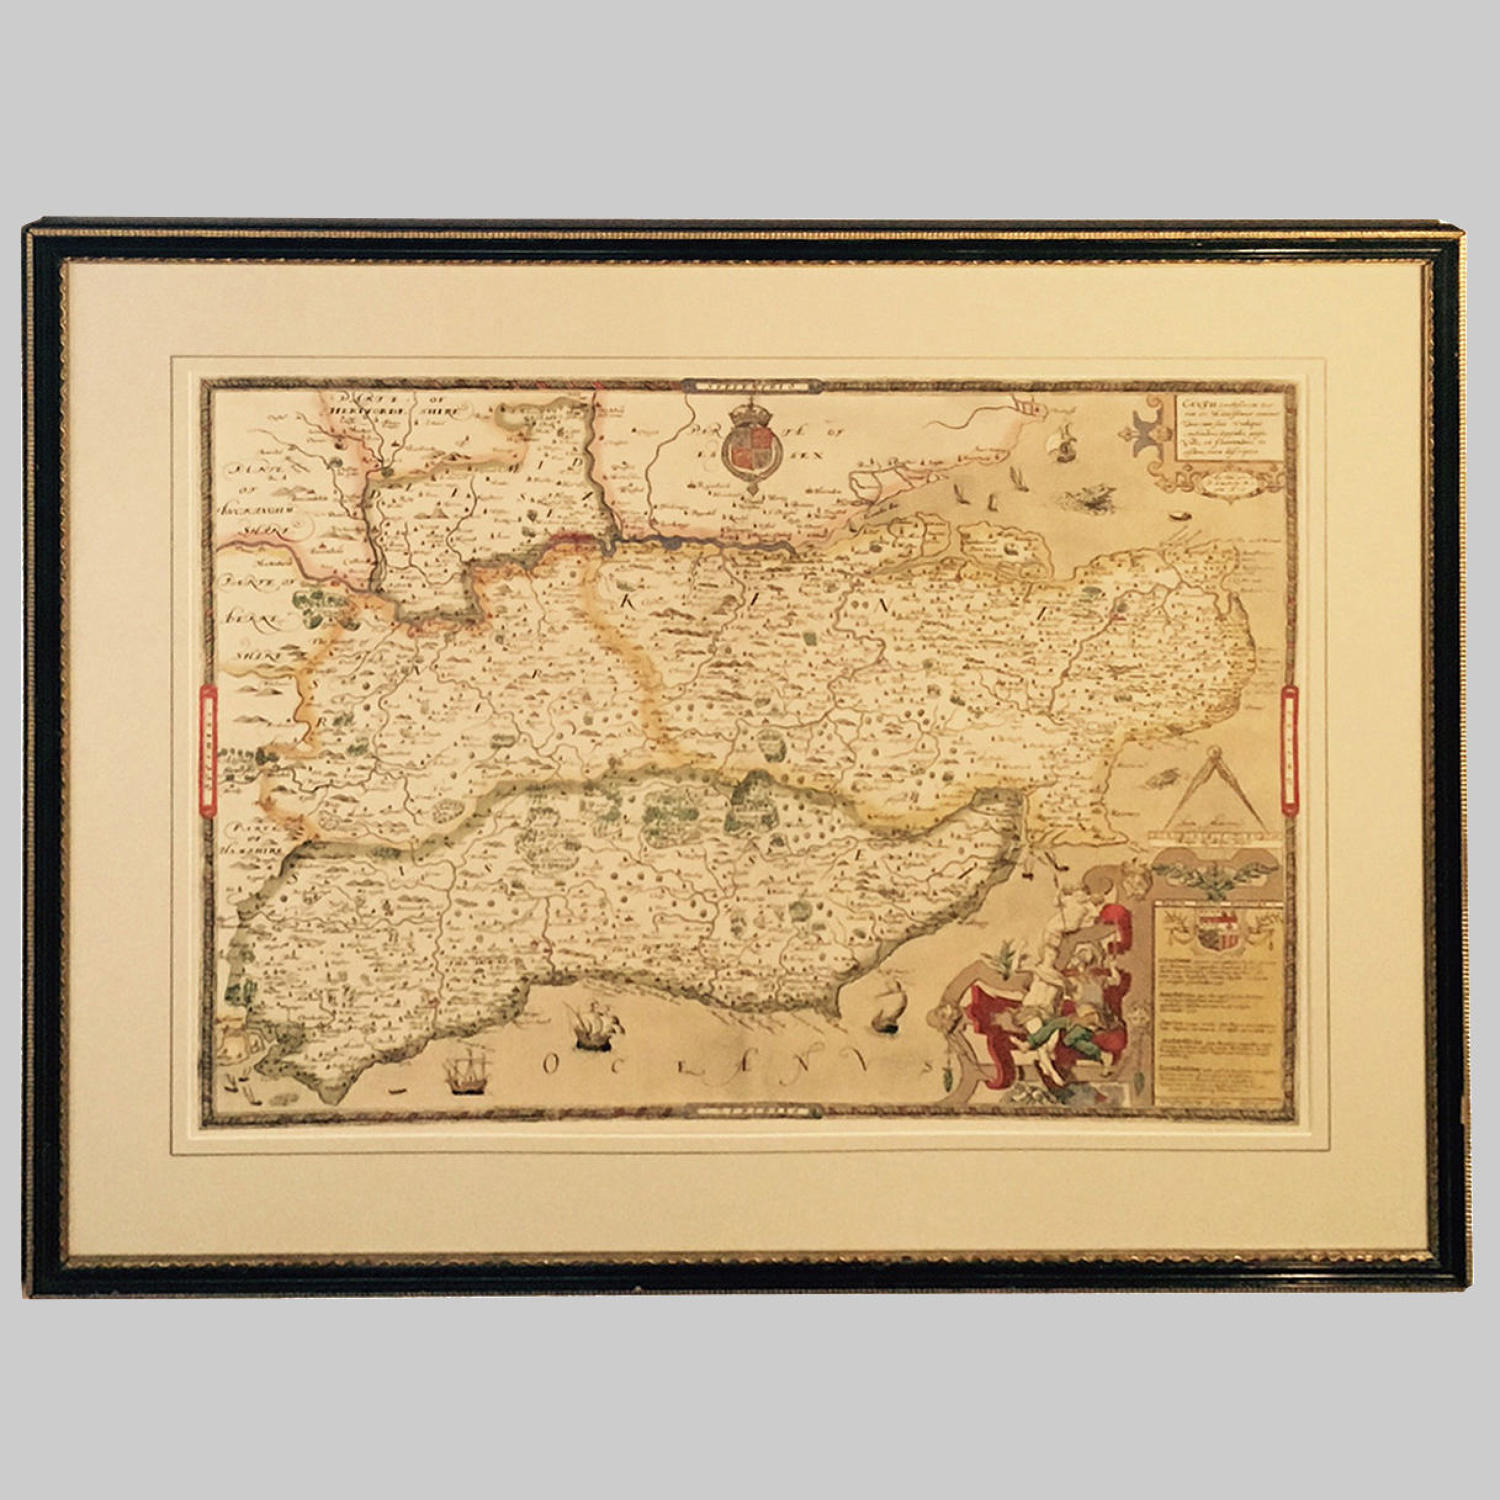 Map of Kent, Sussex, Surrey & Middlesex by Saxton 1575.